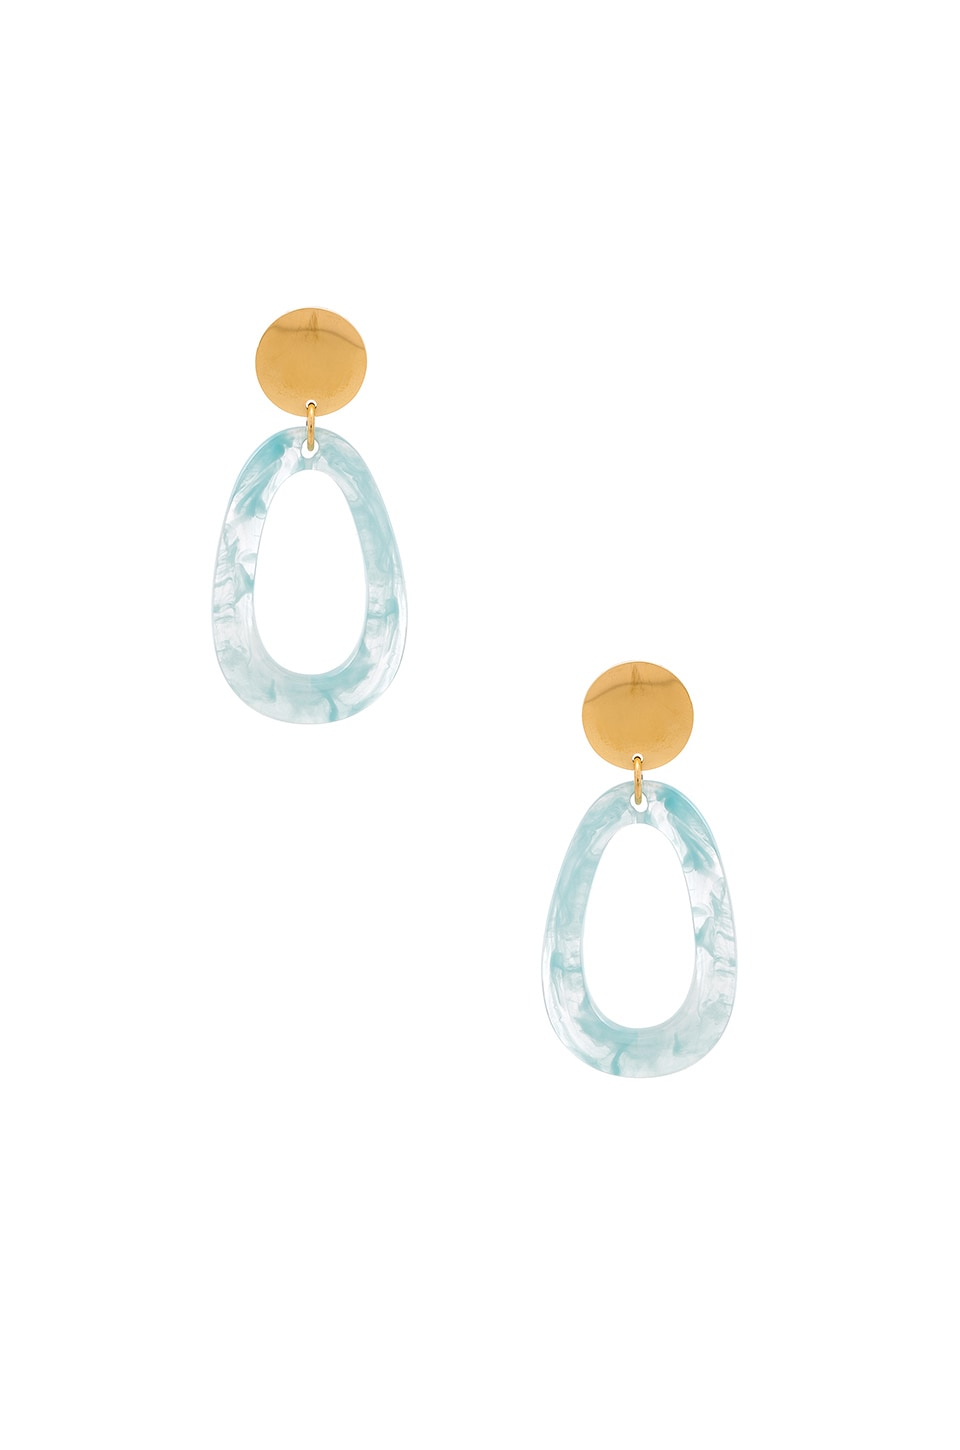 Amber Sceats Geneva Earrings in White & Blue Marble